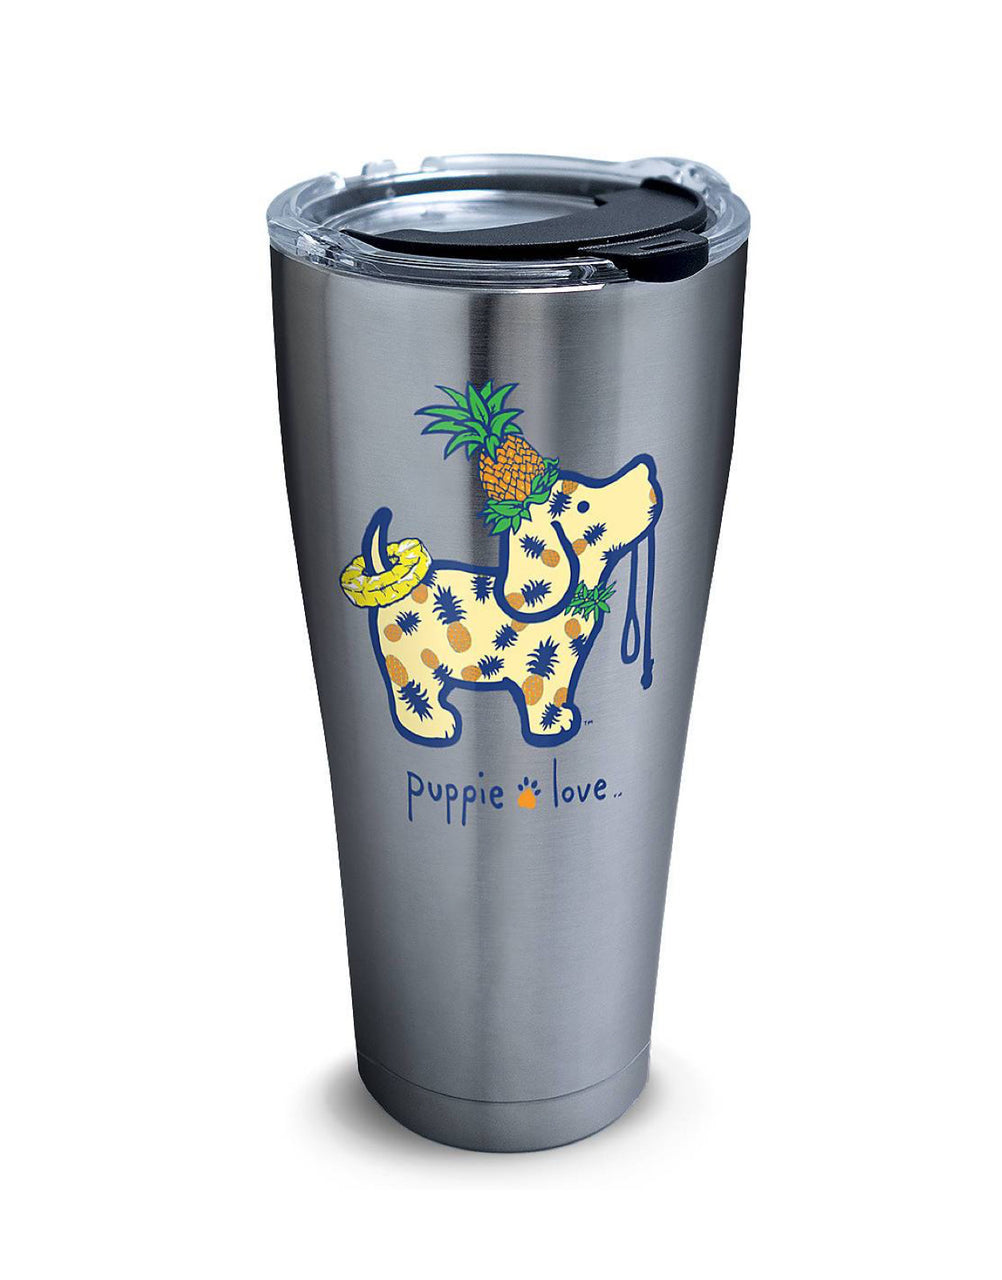 PINEAPPLE PUP 30oz STAINLESS STEEL TUMBLER - Puppie Love